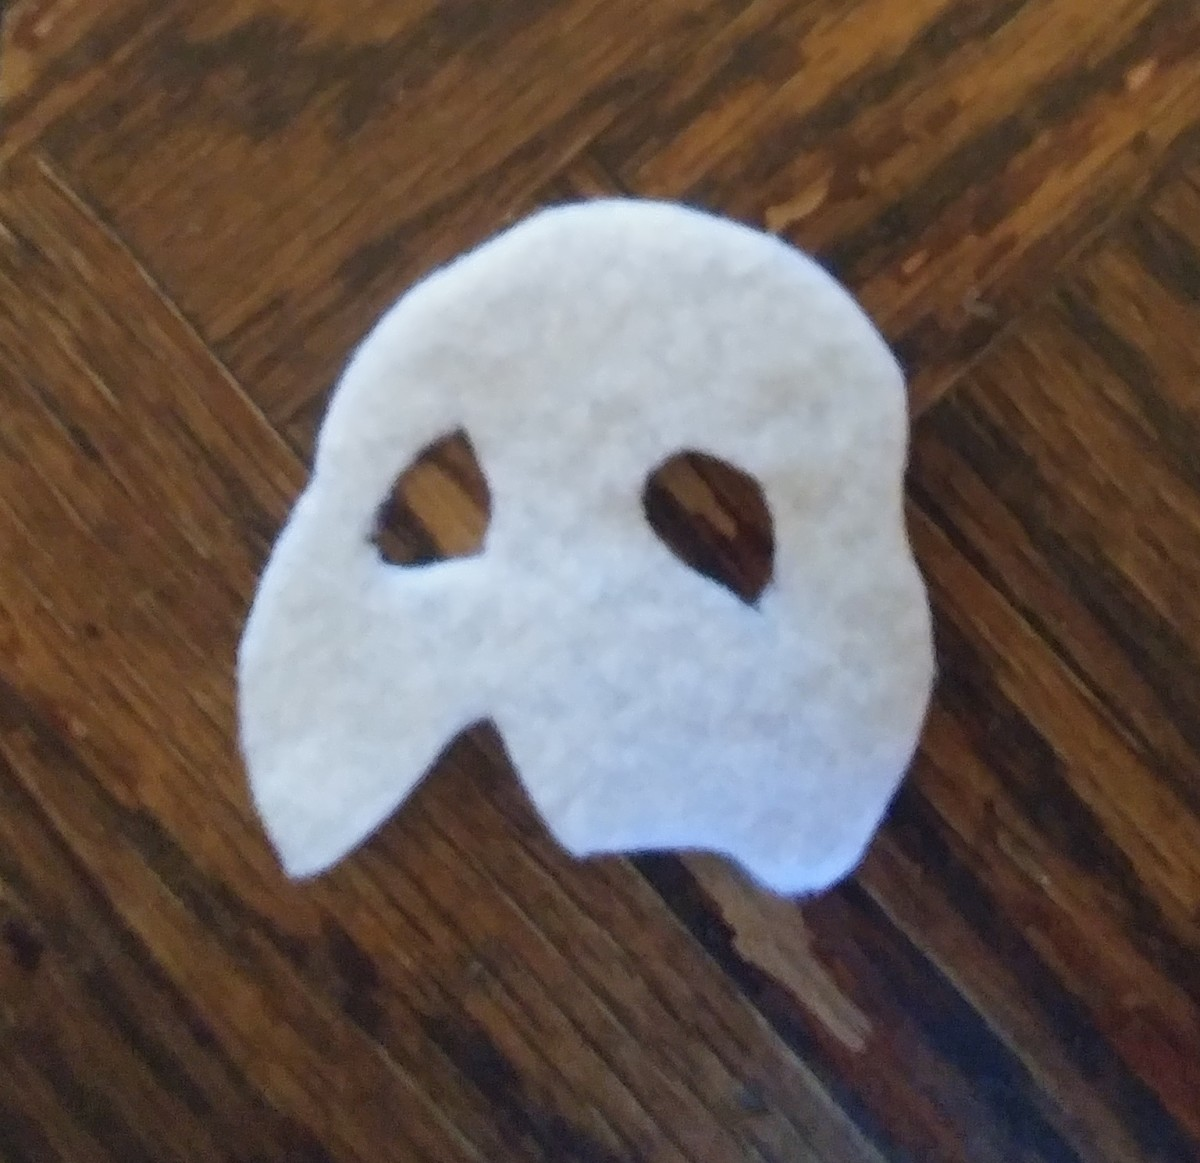 Cut the iconic white mask out of white felt.